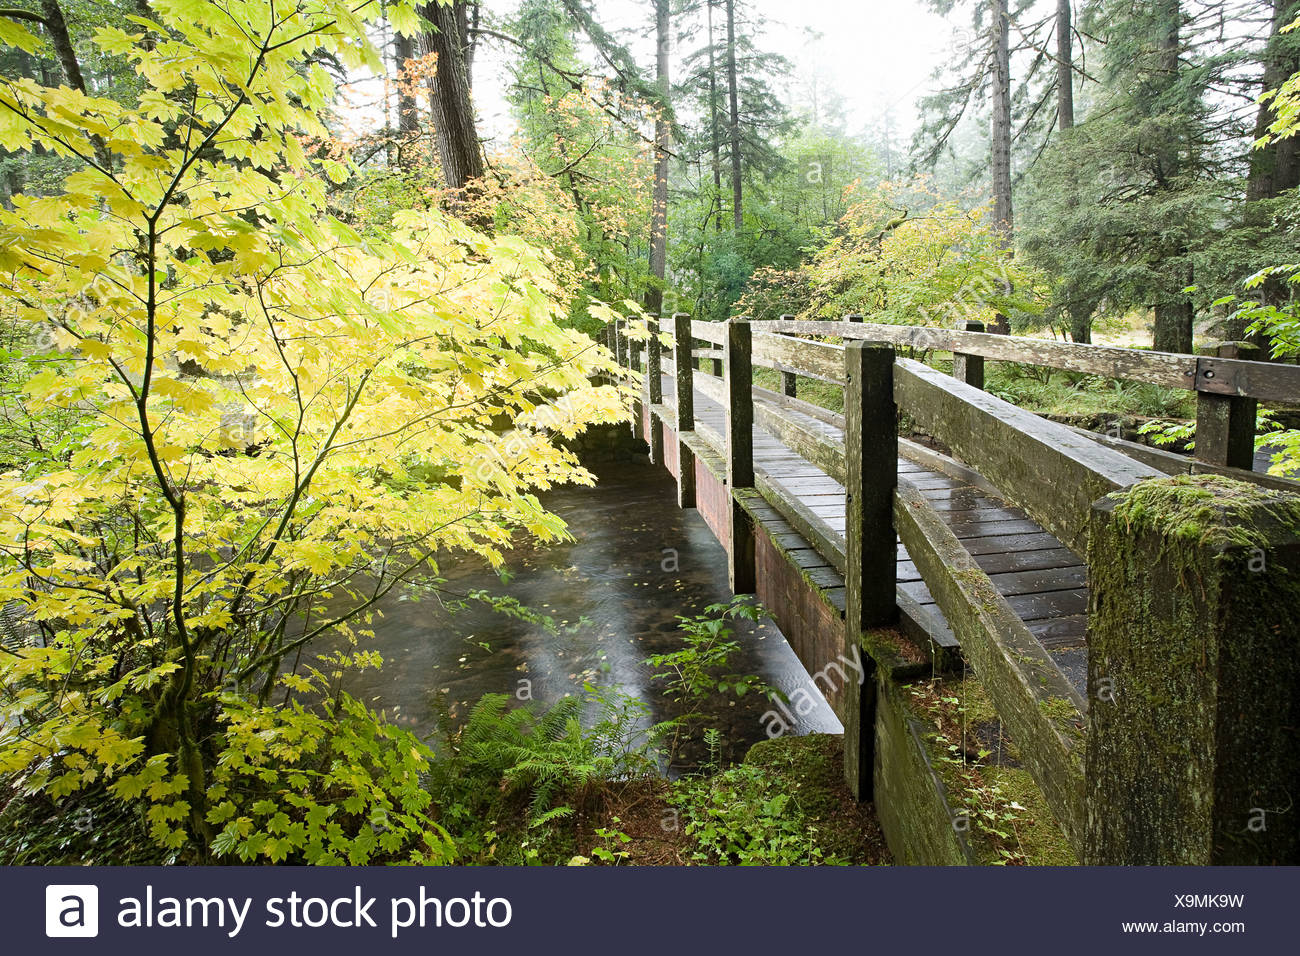 Wooden bridge in silver falls state park - Stock Image